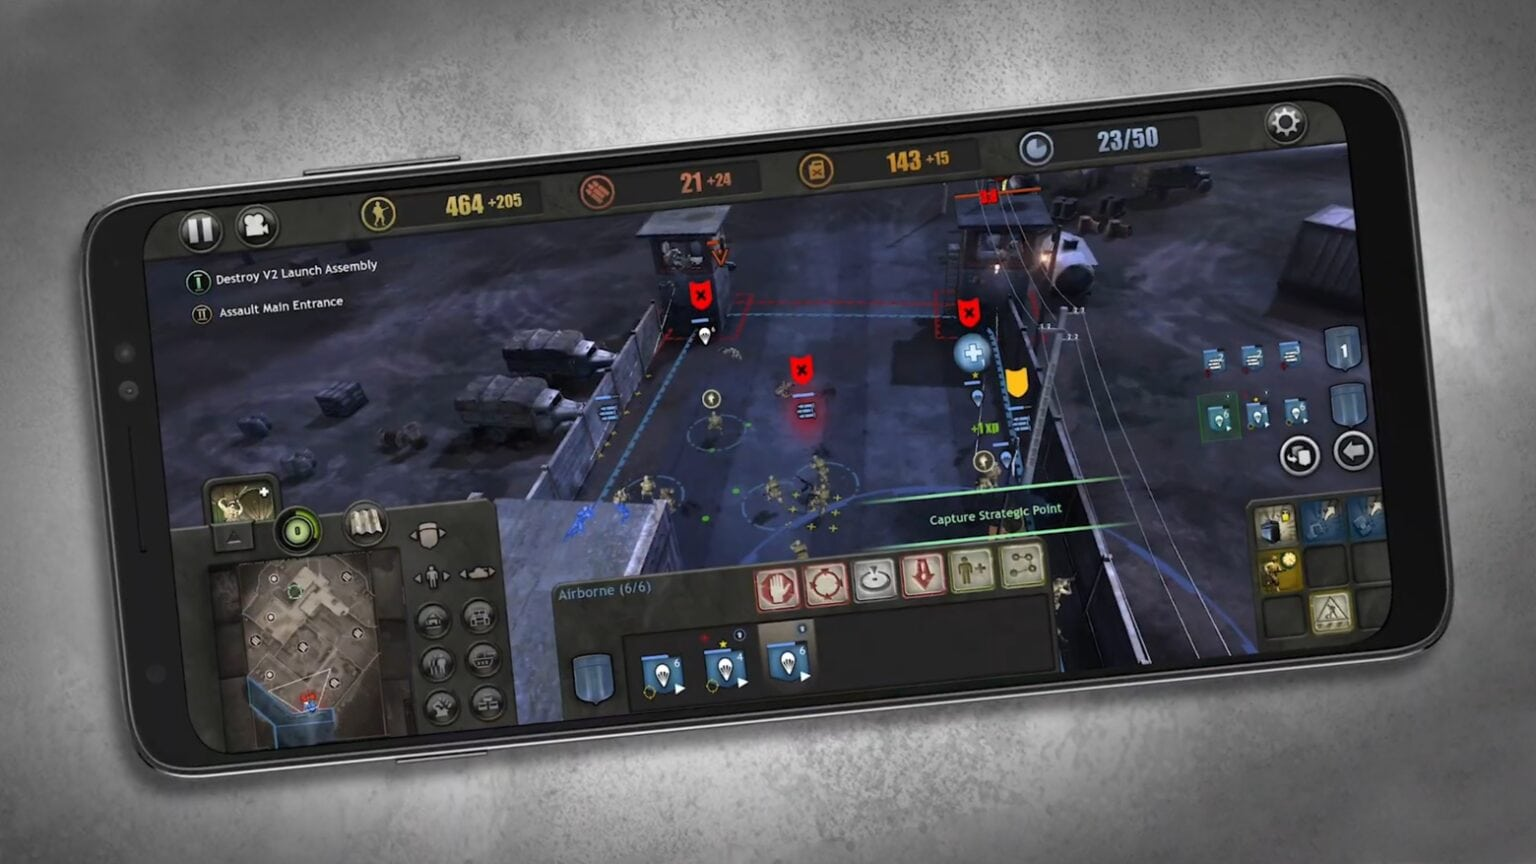 'Company of Heroes' will debut on iPhone on Sept. 10.